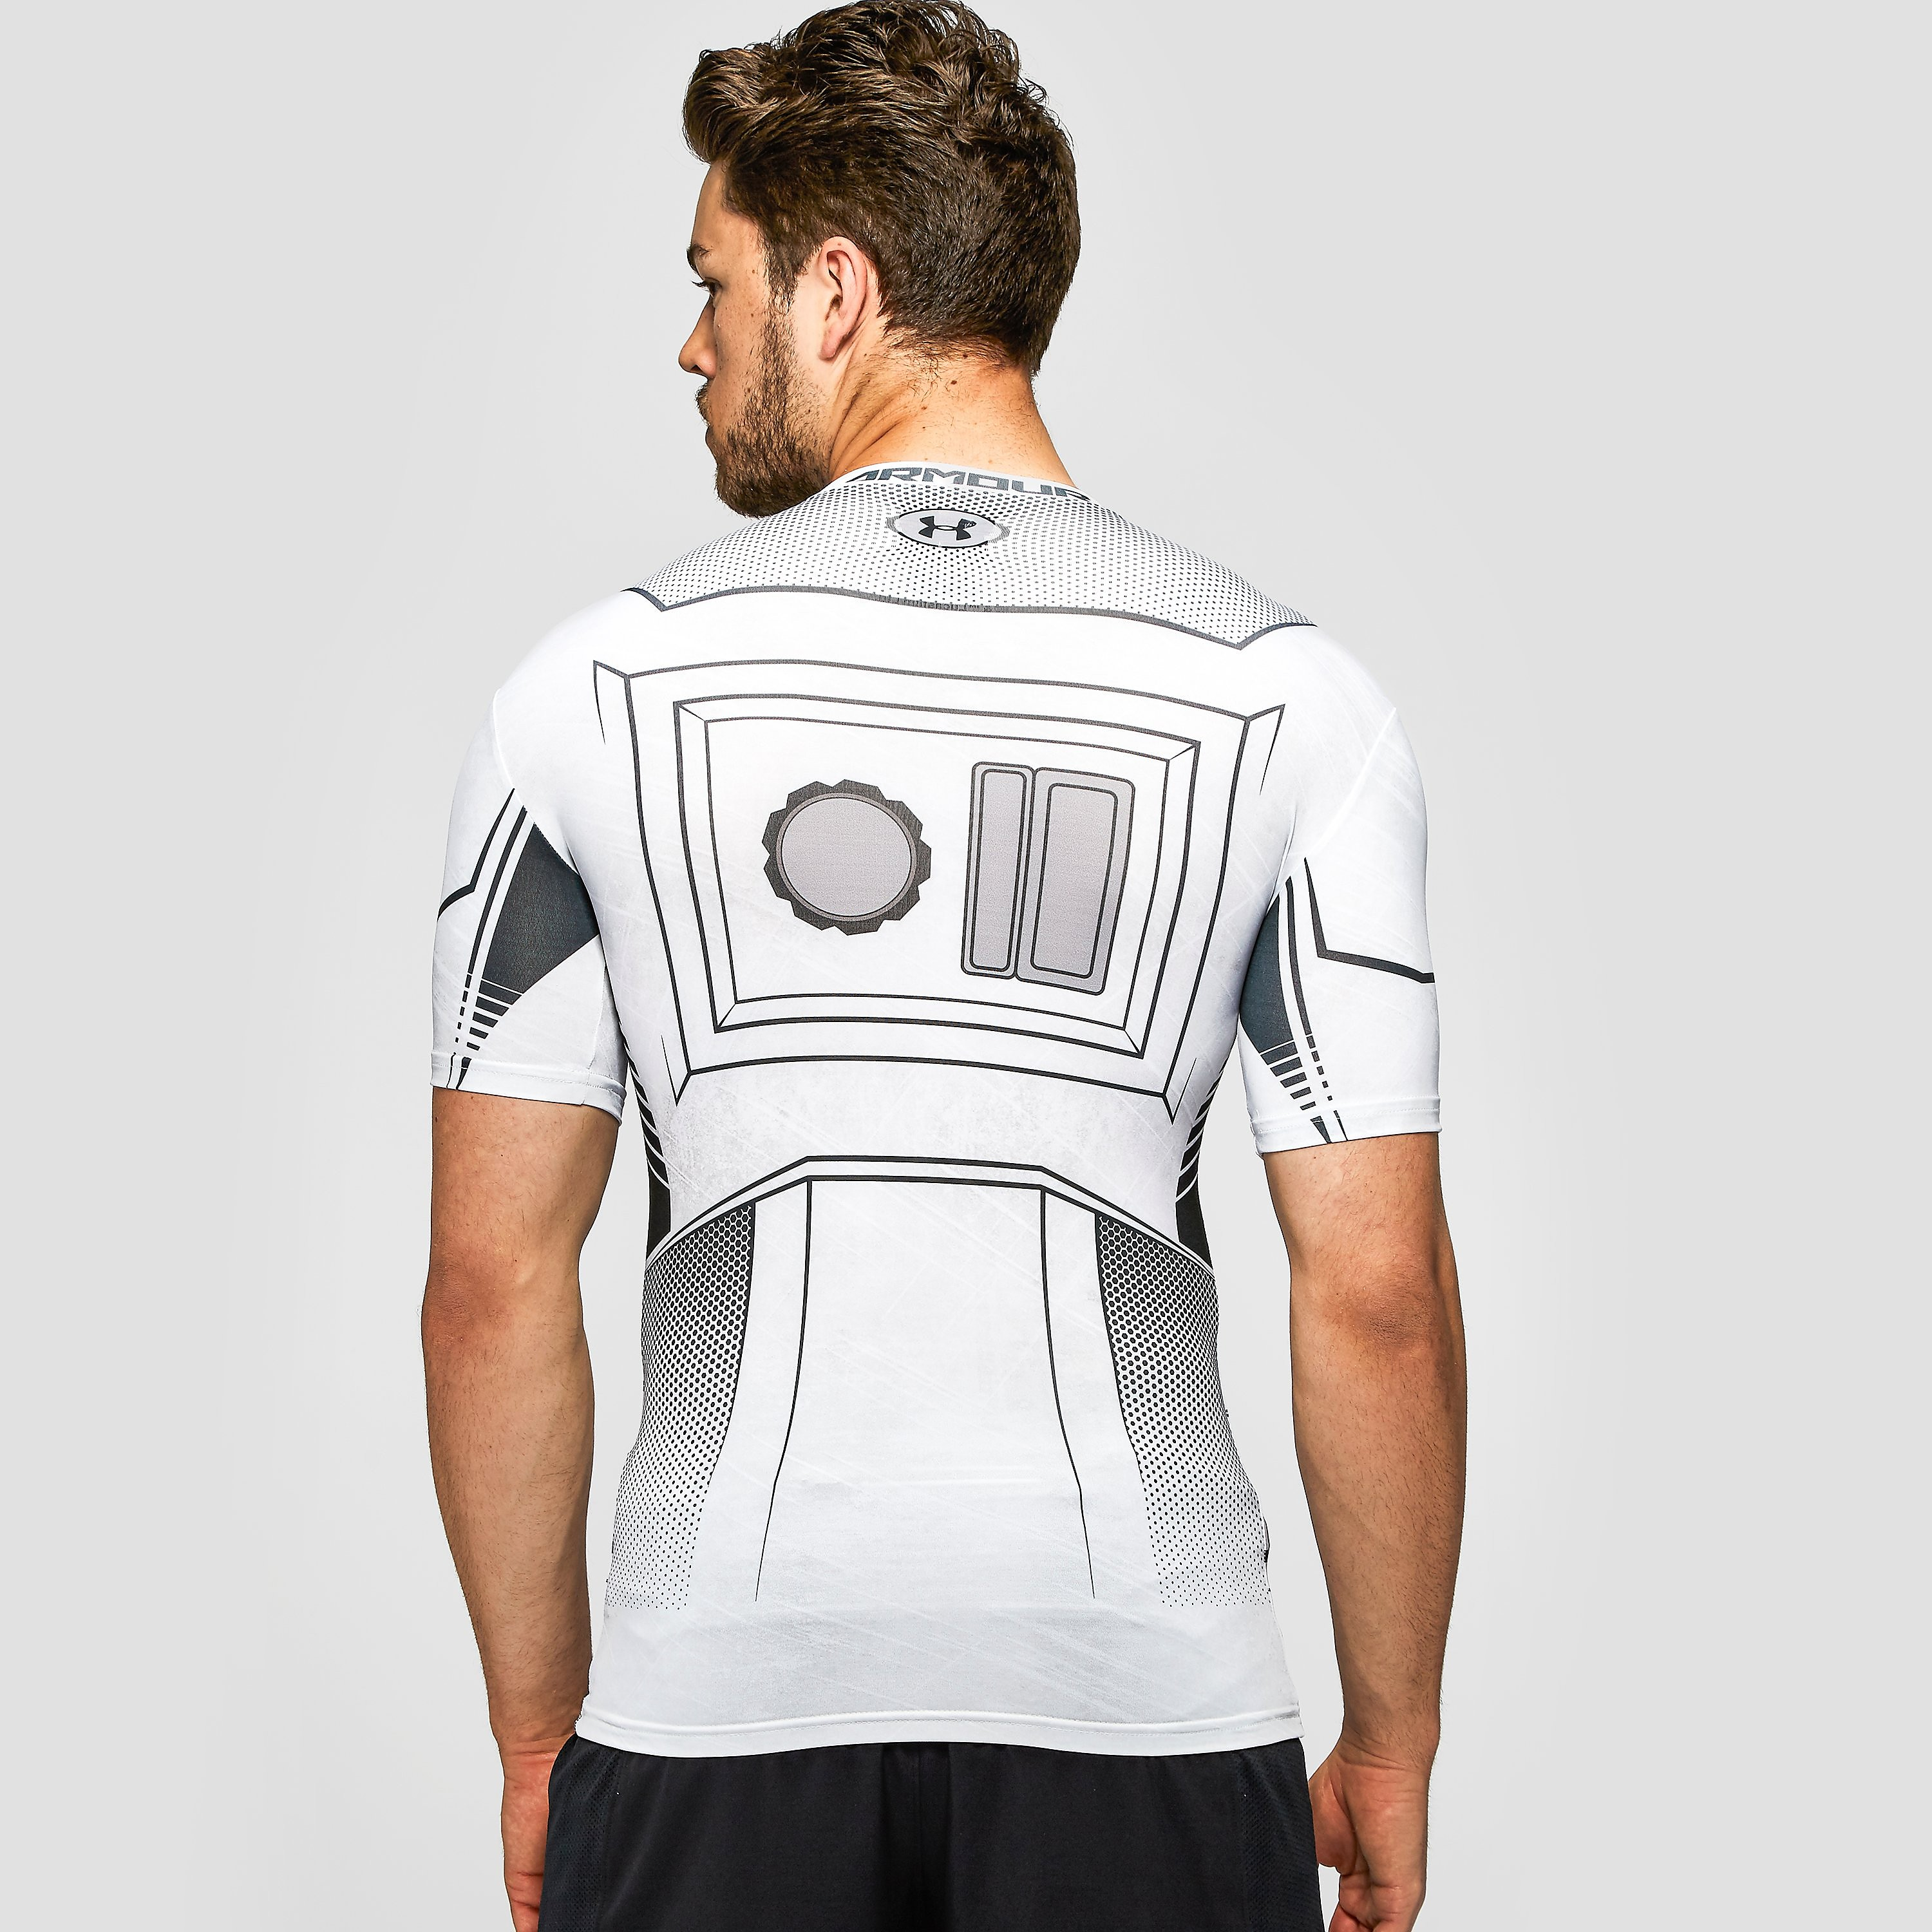 Under Armour Star Wars Strom Trooper Compression Short- Sleeve Men's Shirt